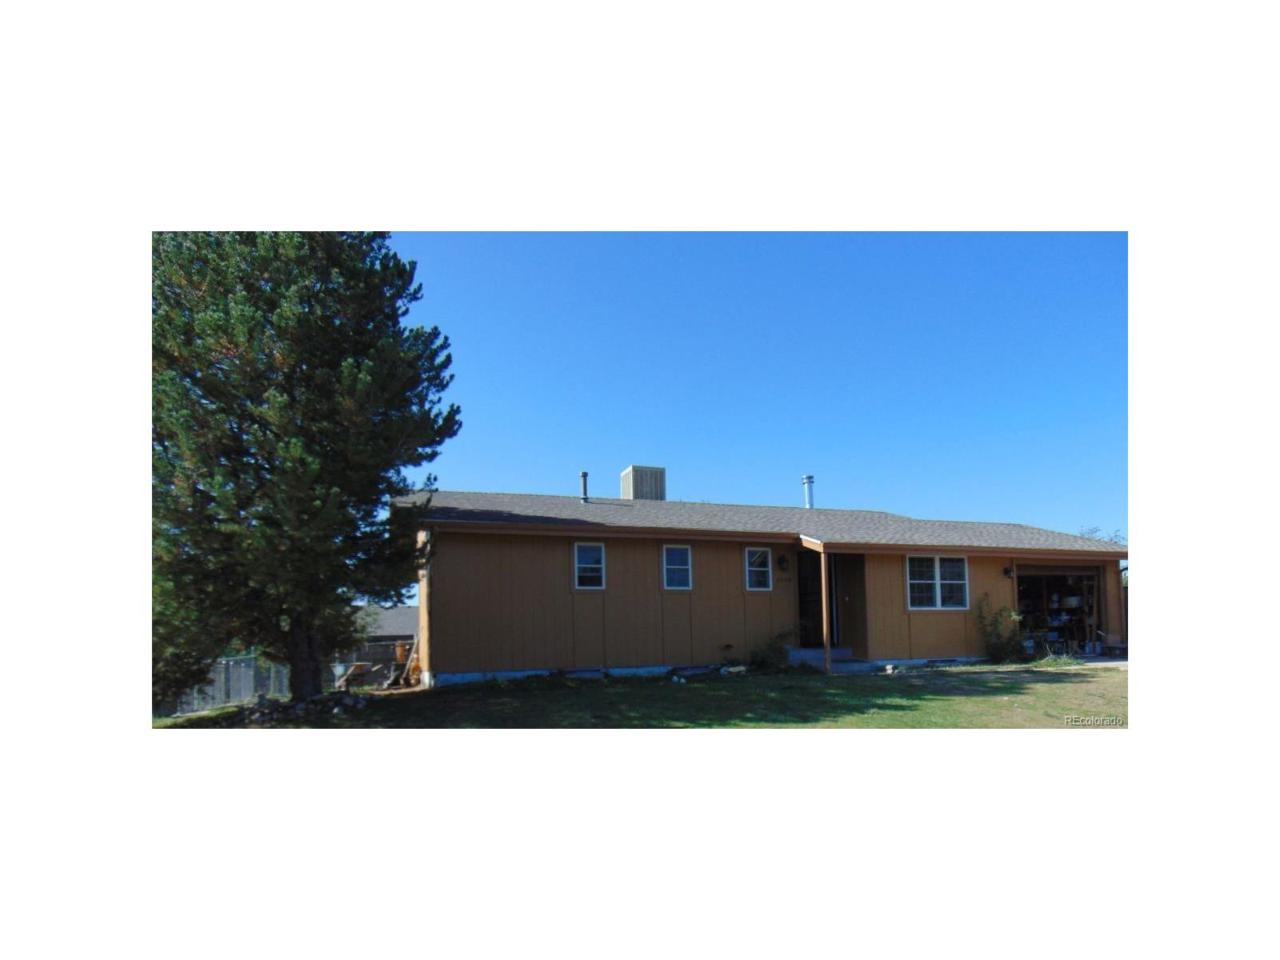 3550 W 130th Place, Broomfield, CO 80020 (MLS #7320748) :: 8z Real Estate